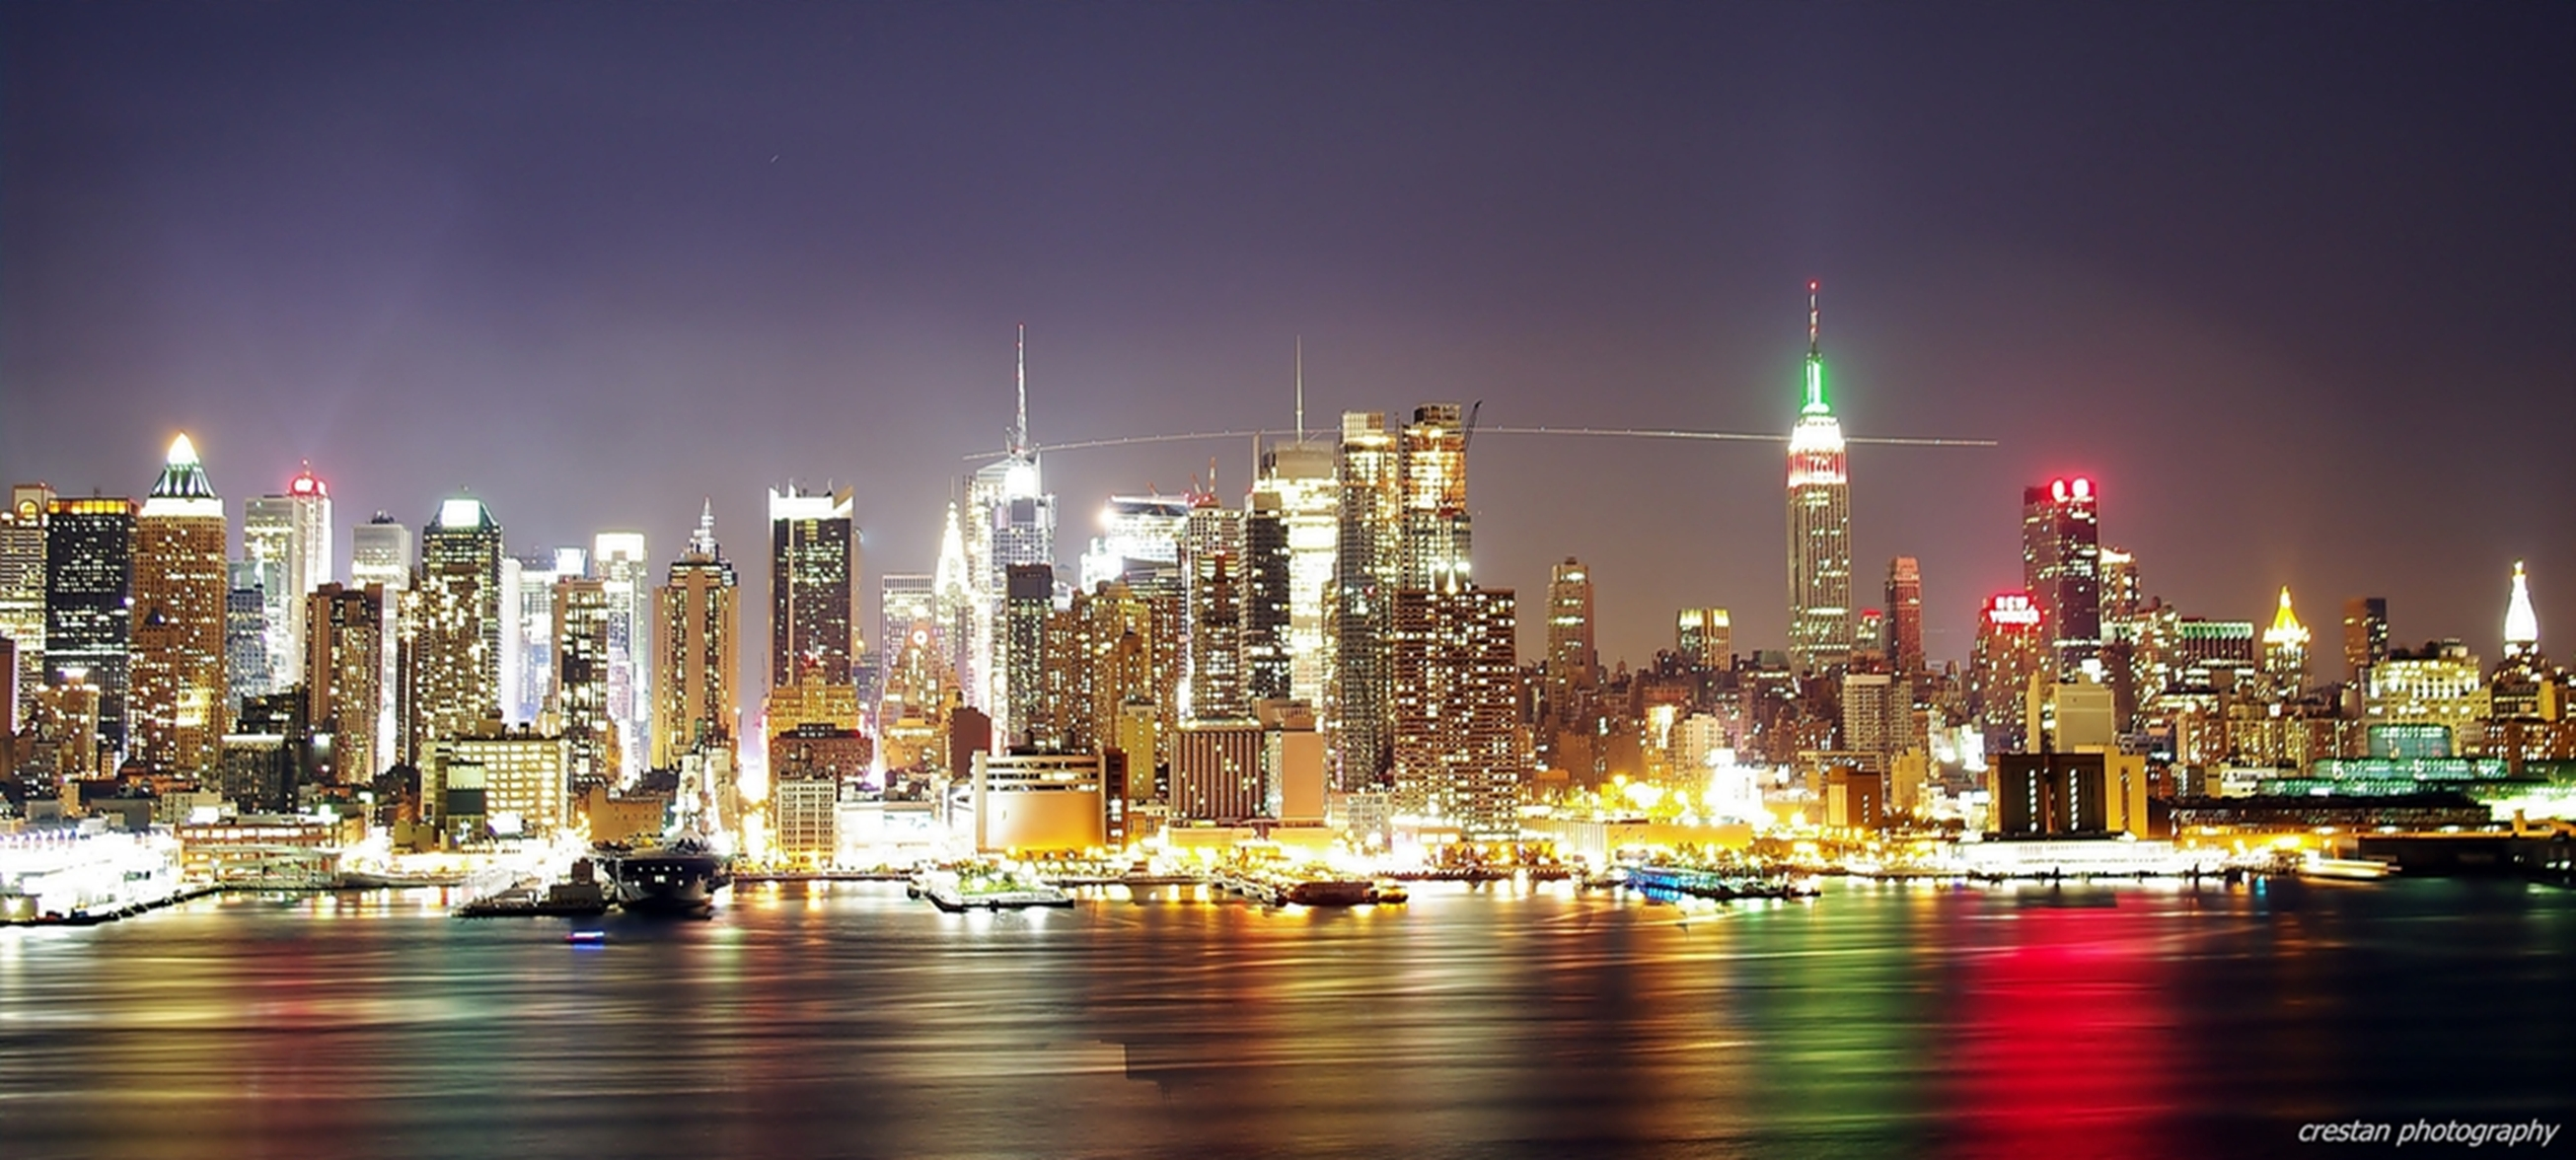 Kulas3vii s photos night scene new york skyline night